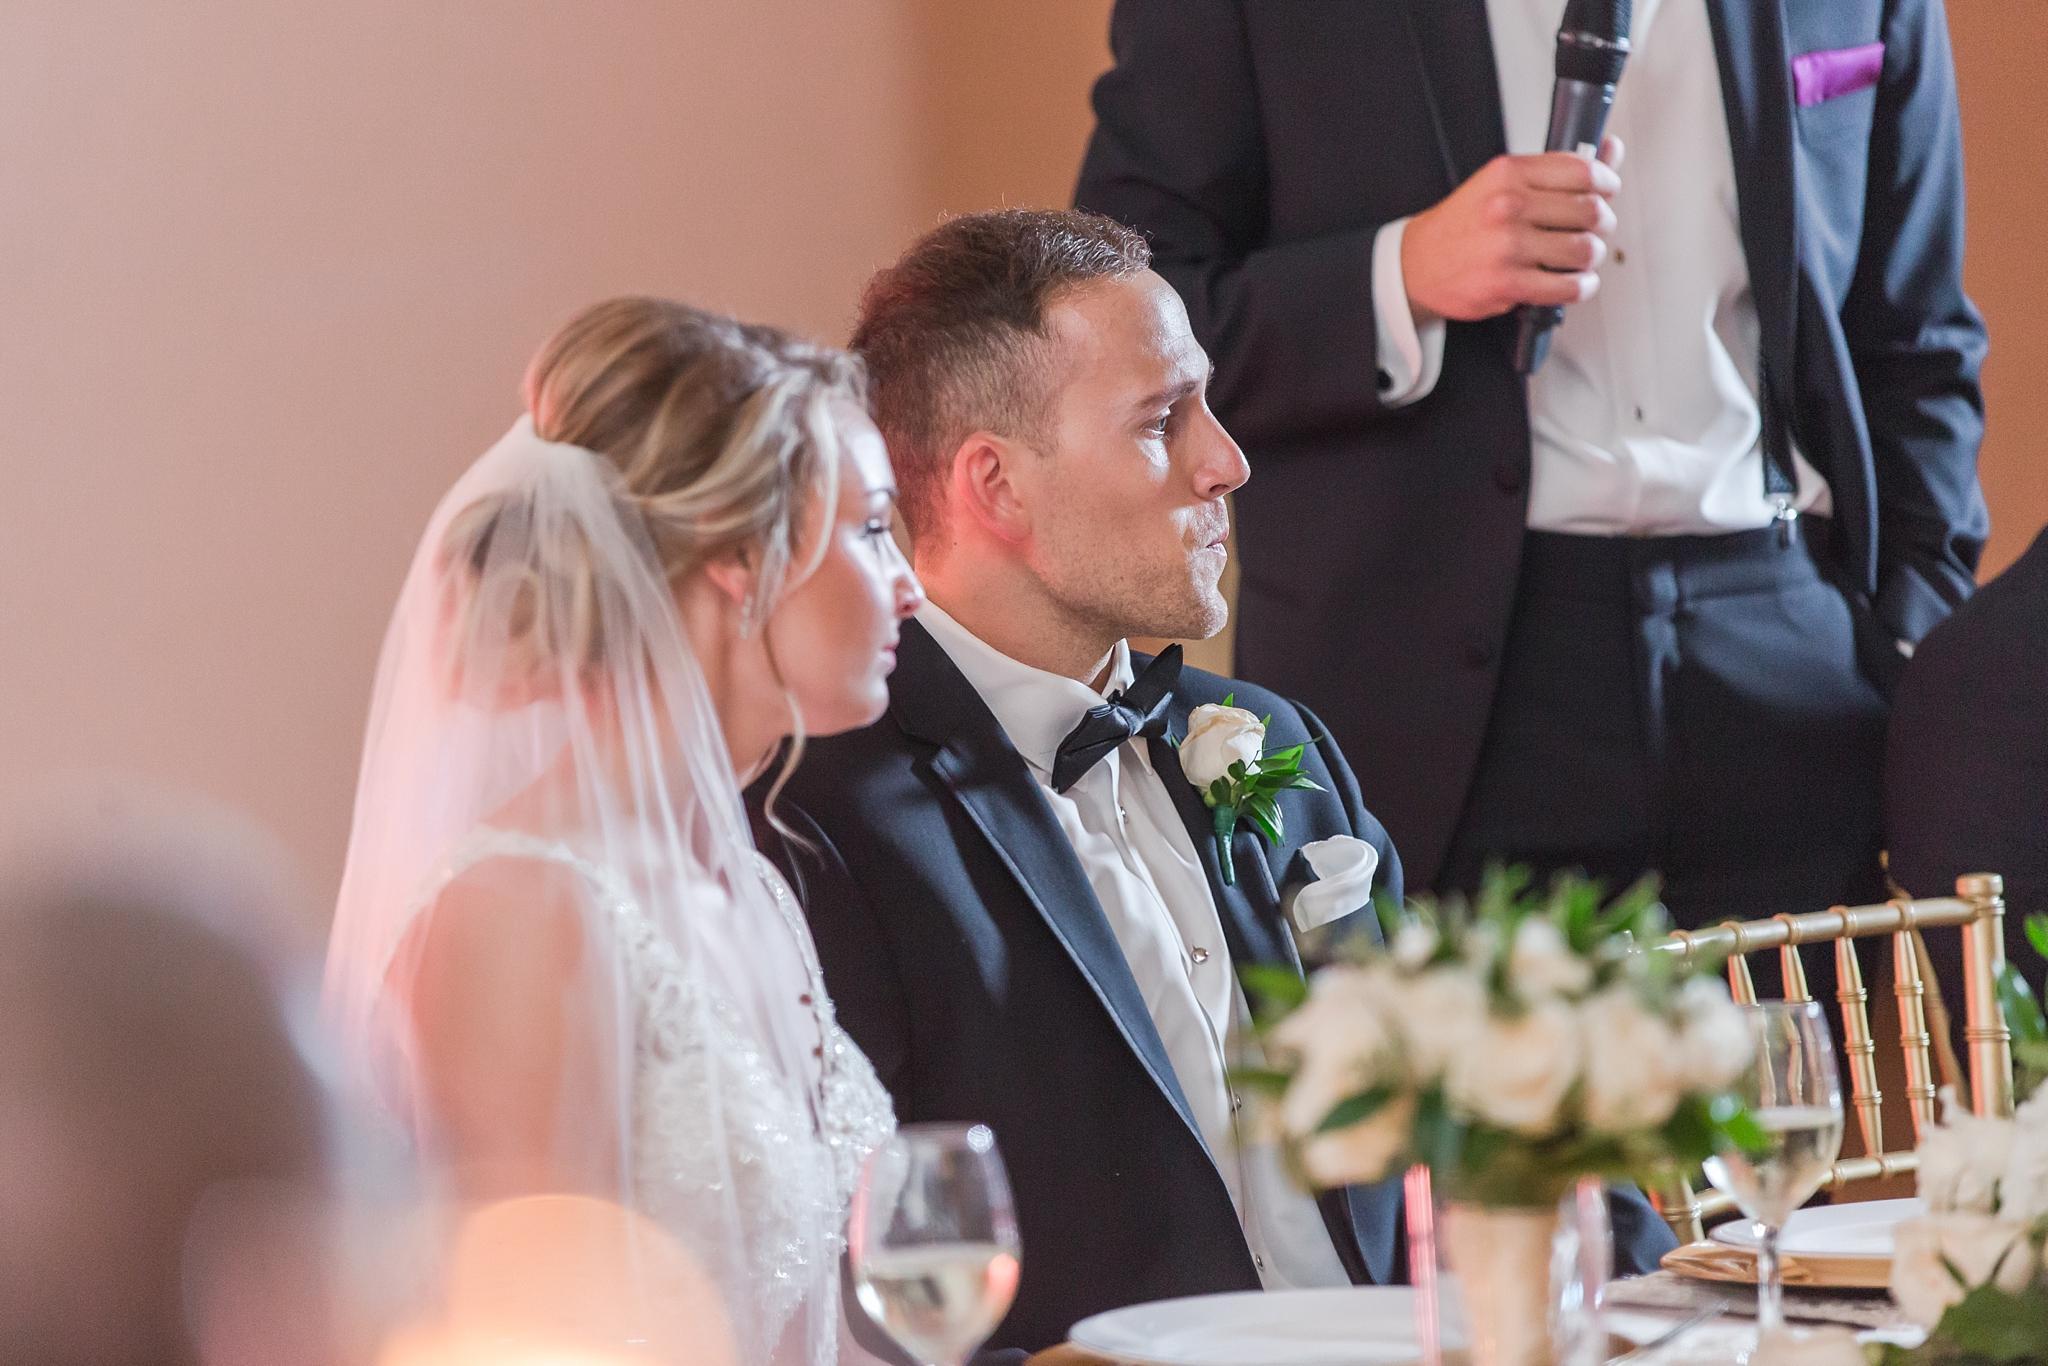 candid-romantic-wedding-photos-at-the-masonic-temple-belle-isle-detroit-institute-of-arts-in-detroit-michigan-by-courtney-carolyn-photography_0095.jpg